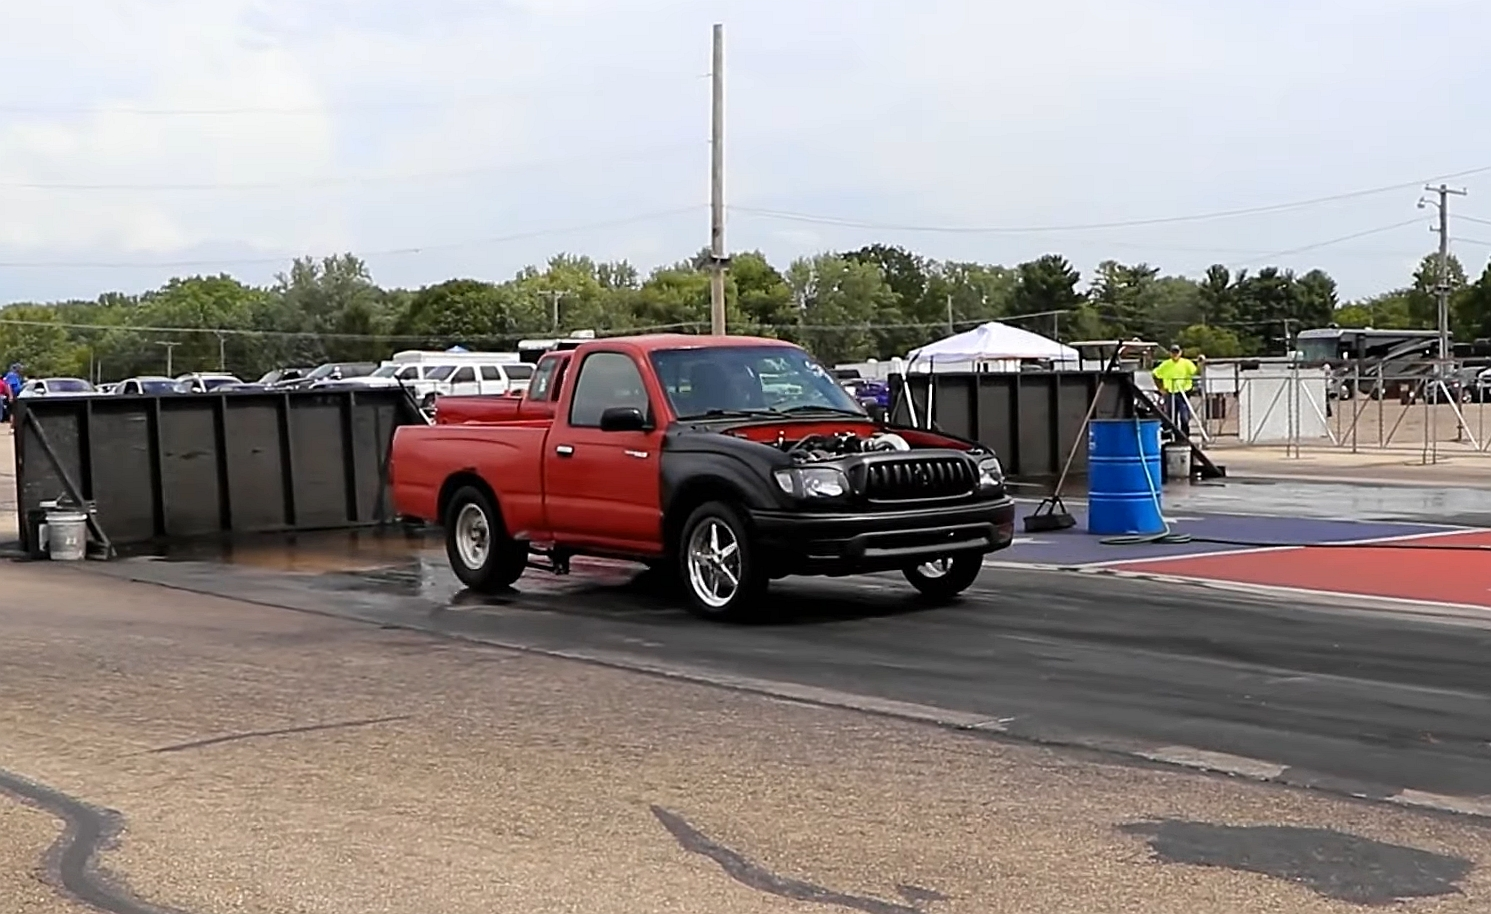 ls-swapped-toyota-tacoma-is-a-drag-beast-in-disguise,-runs-9s